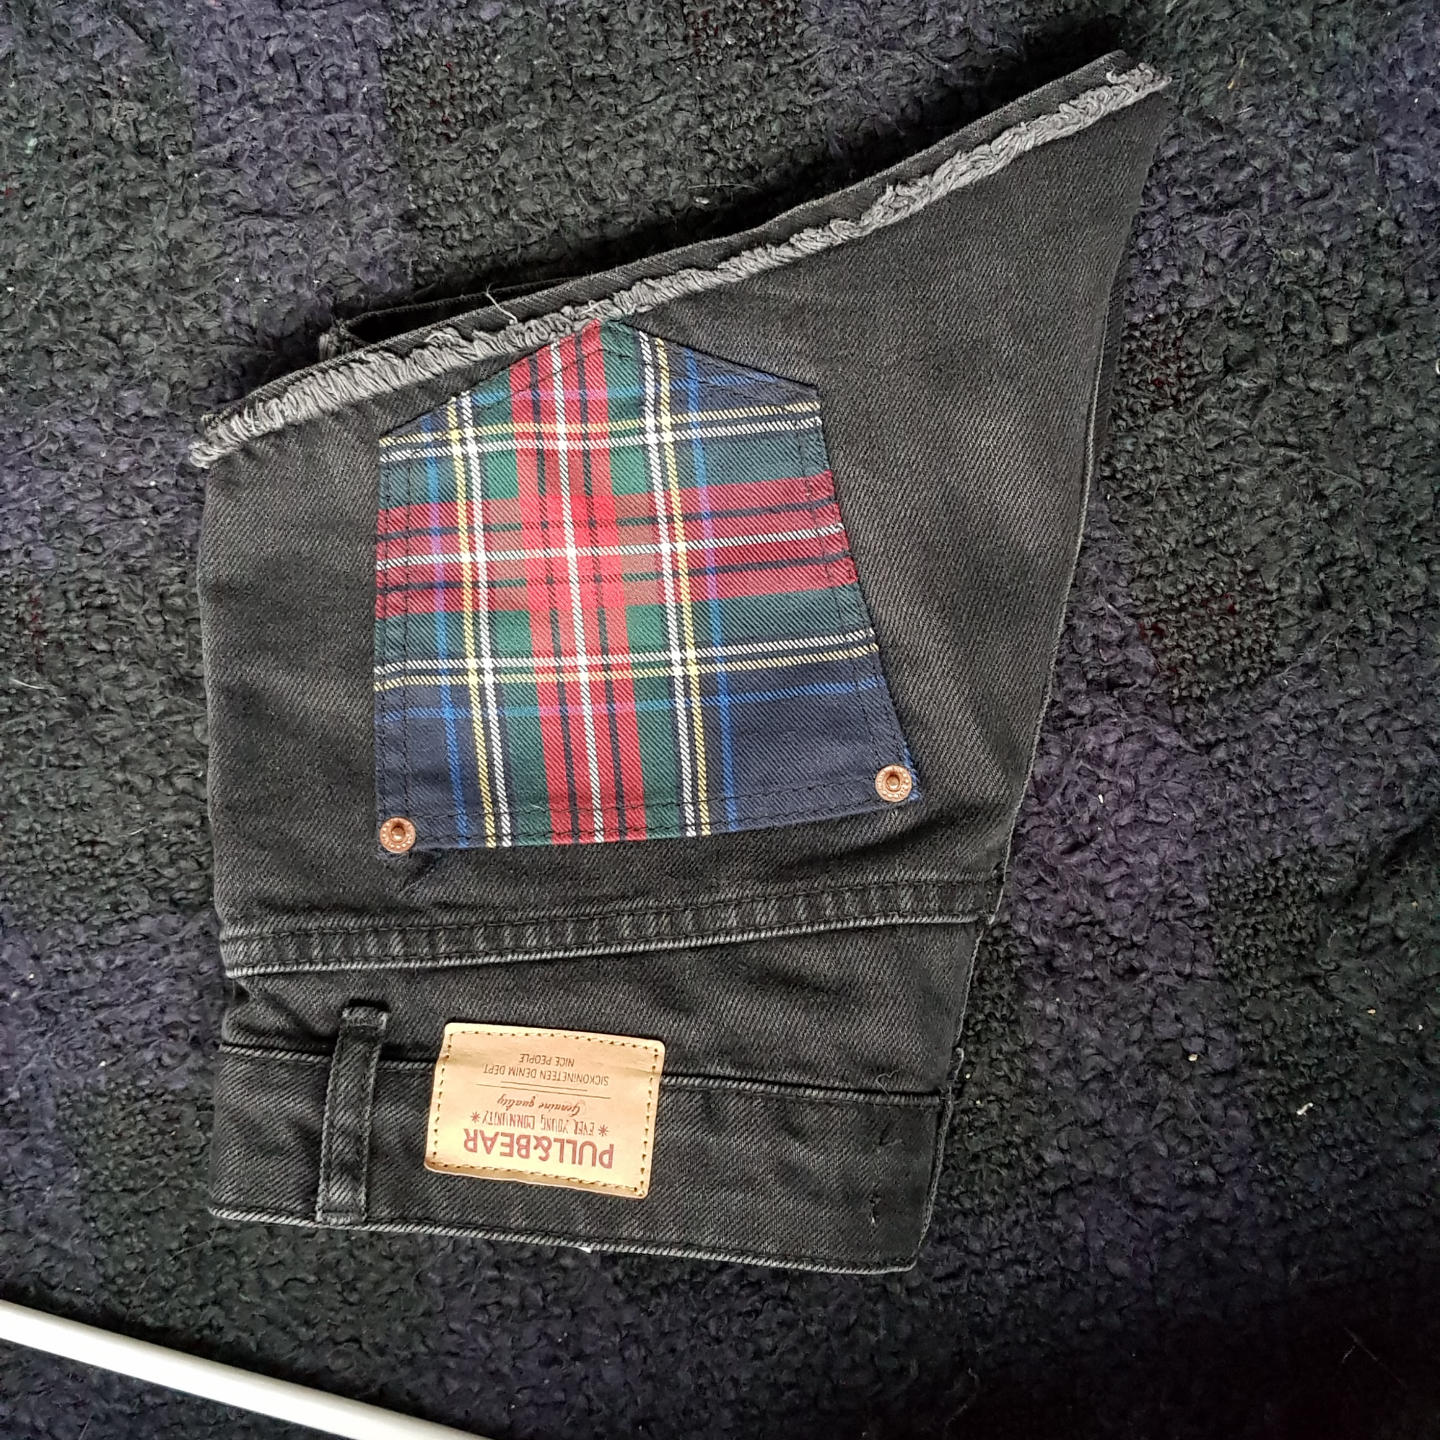 Pull & Bear shorts in gray with red-checked pockets! Barely use as good condition. Stylish details & high waist.. Shorts.